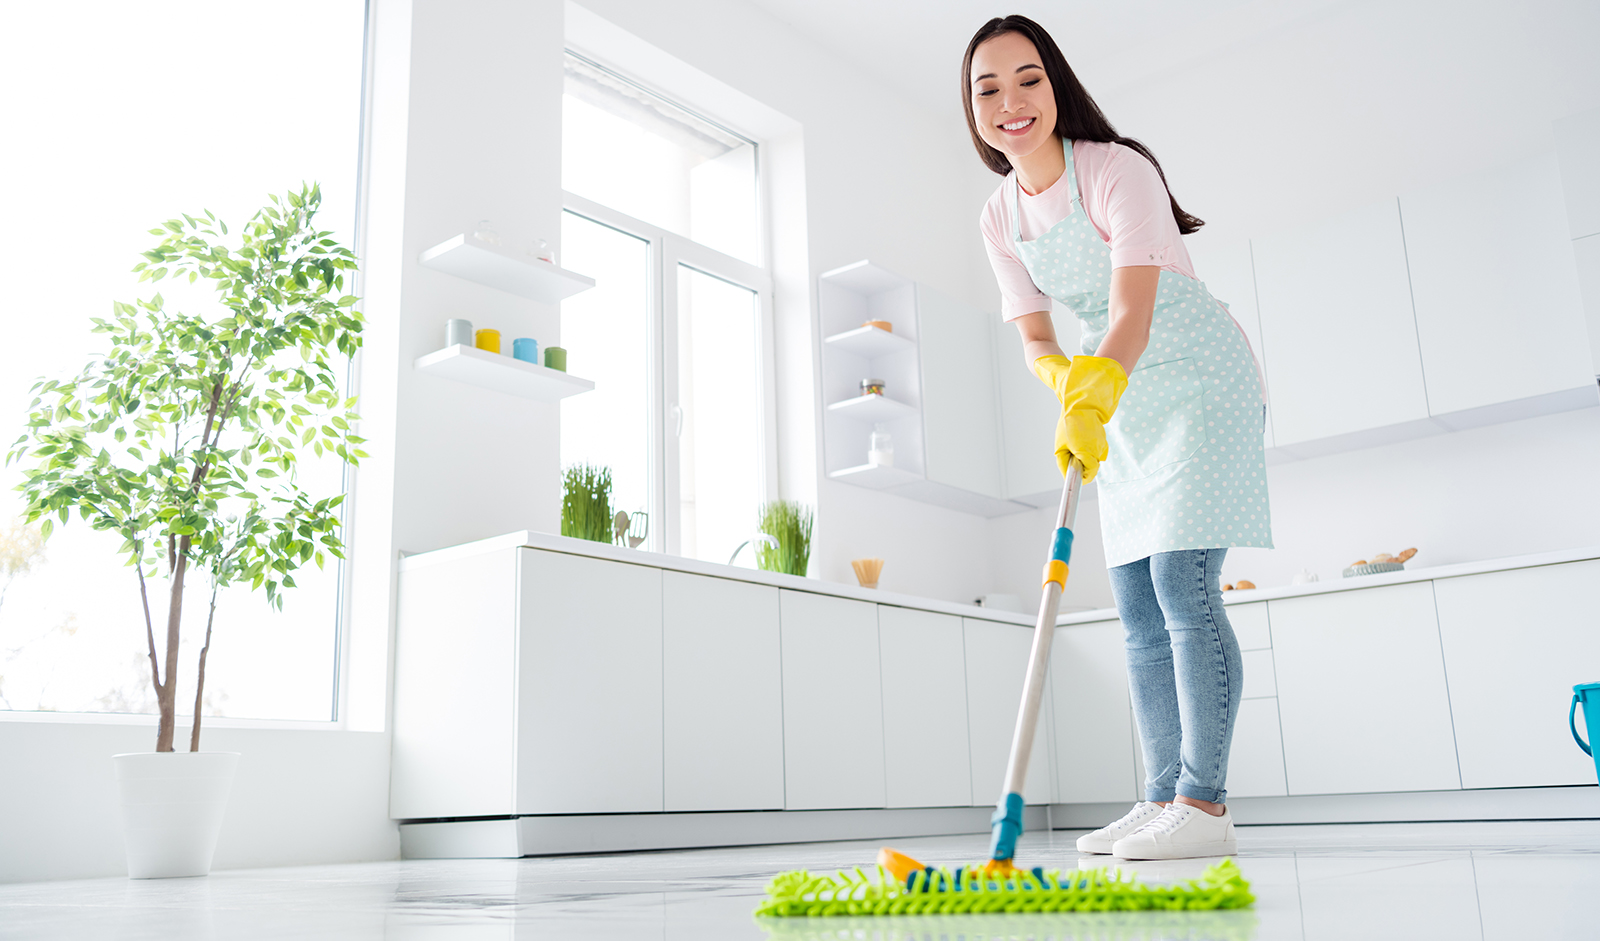 reasons-to-hire-a-professional-cleaner-main-image-woman-cleaning-floor